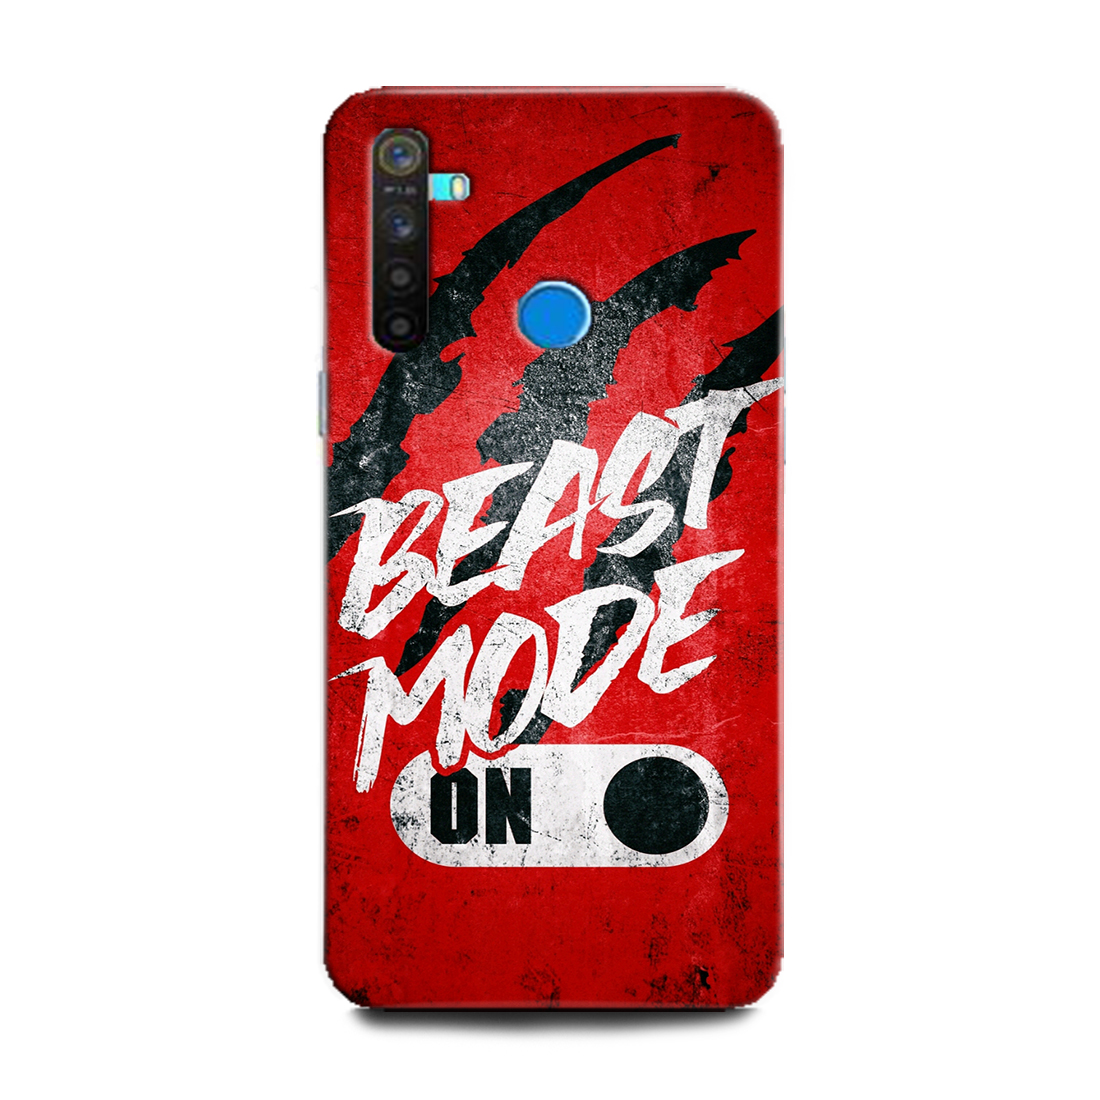 INDICRAFT Mobile Back Cover For Realme 5 Pro Hard Case (Motivational, Life Quotes, Beast Mode on, Motivation, Inspiration, Positive, RMX1971) (AB-Realme5Pro-0947)